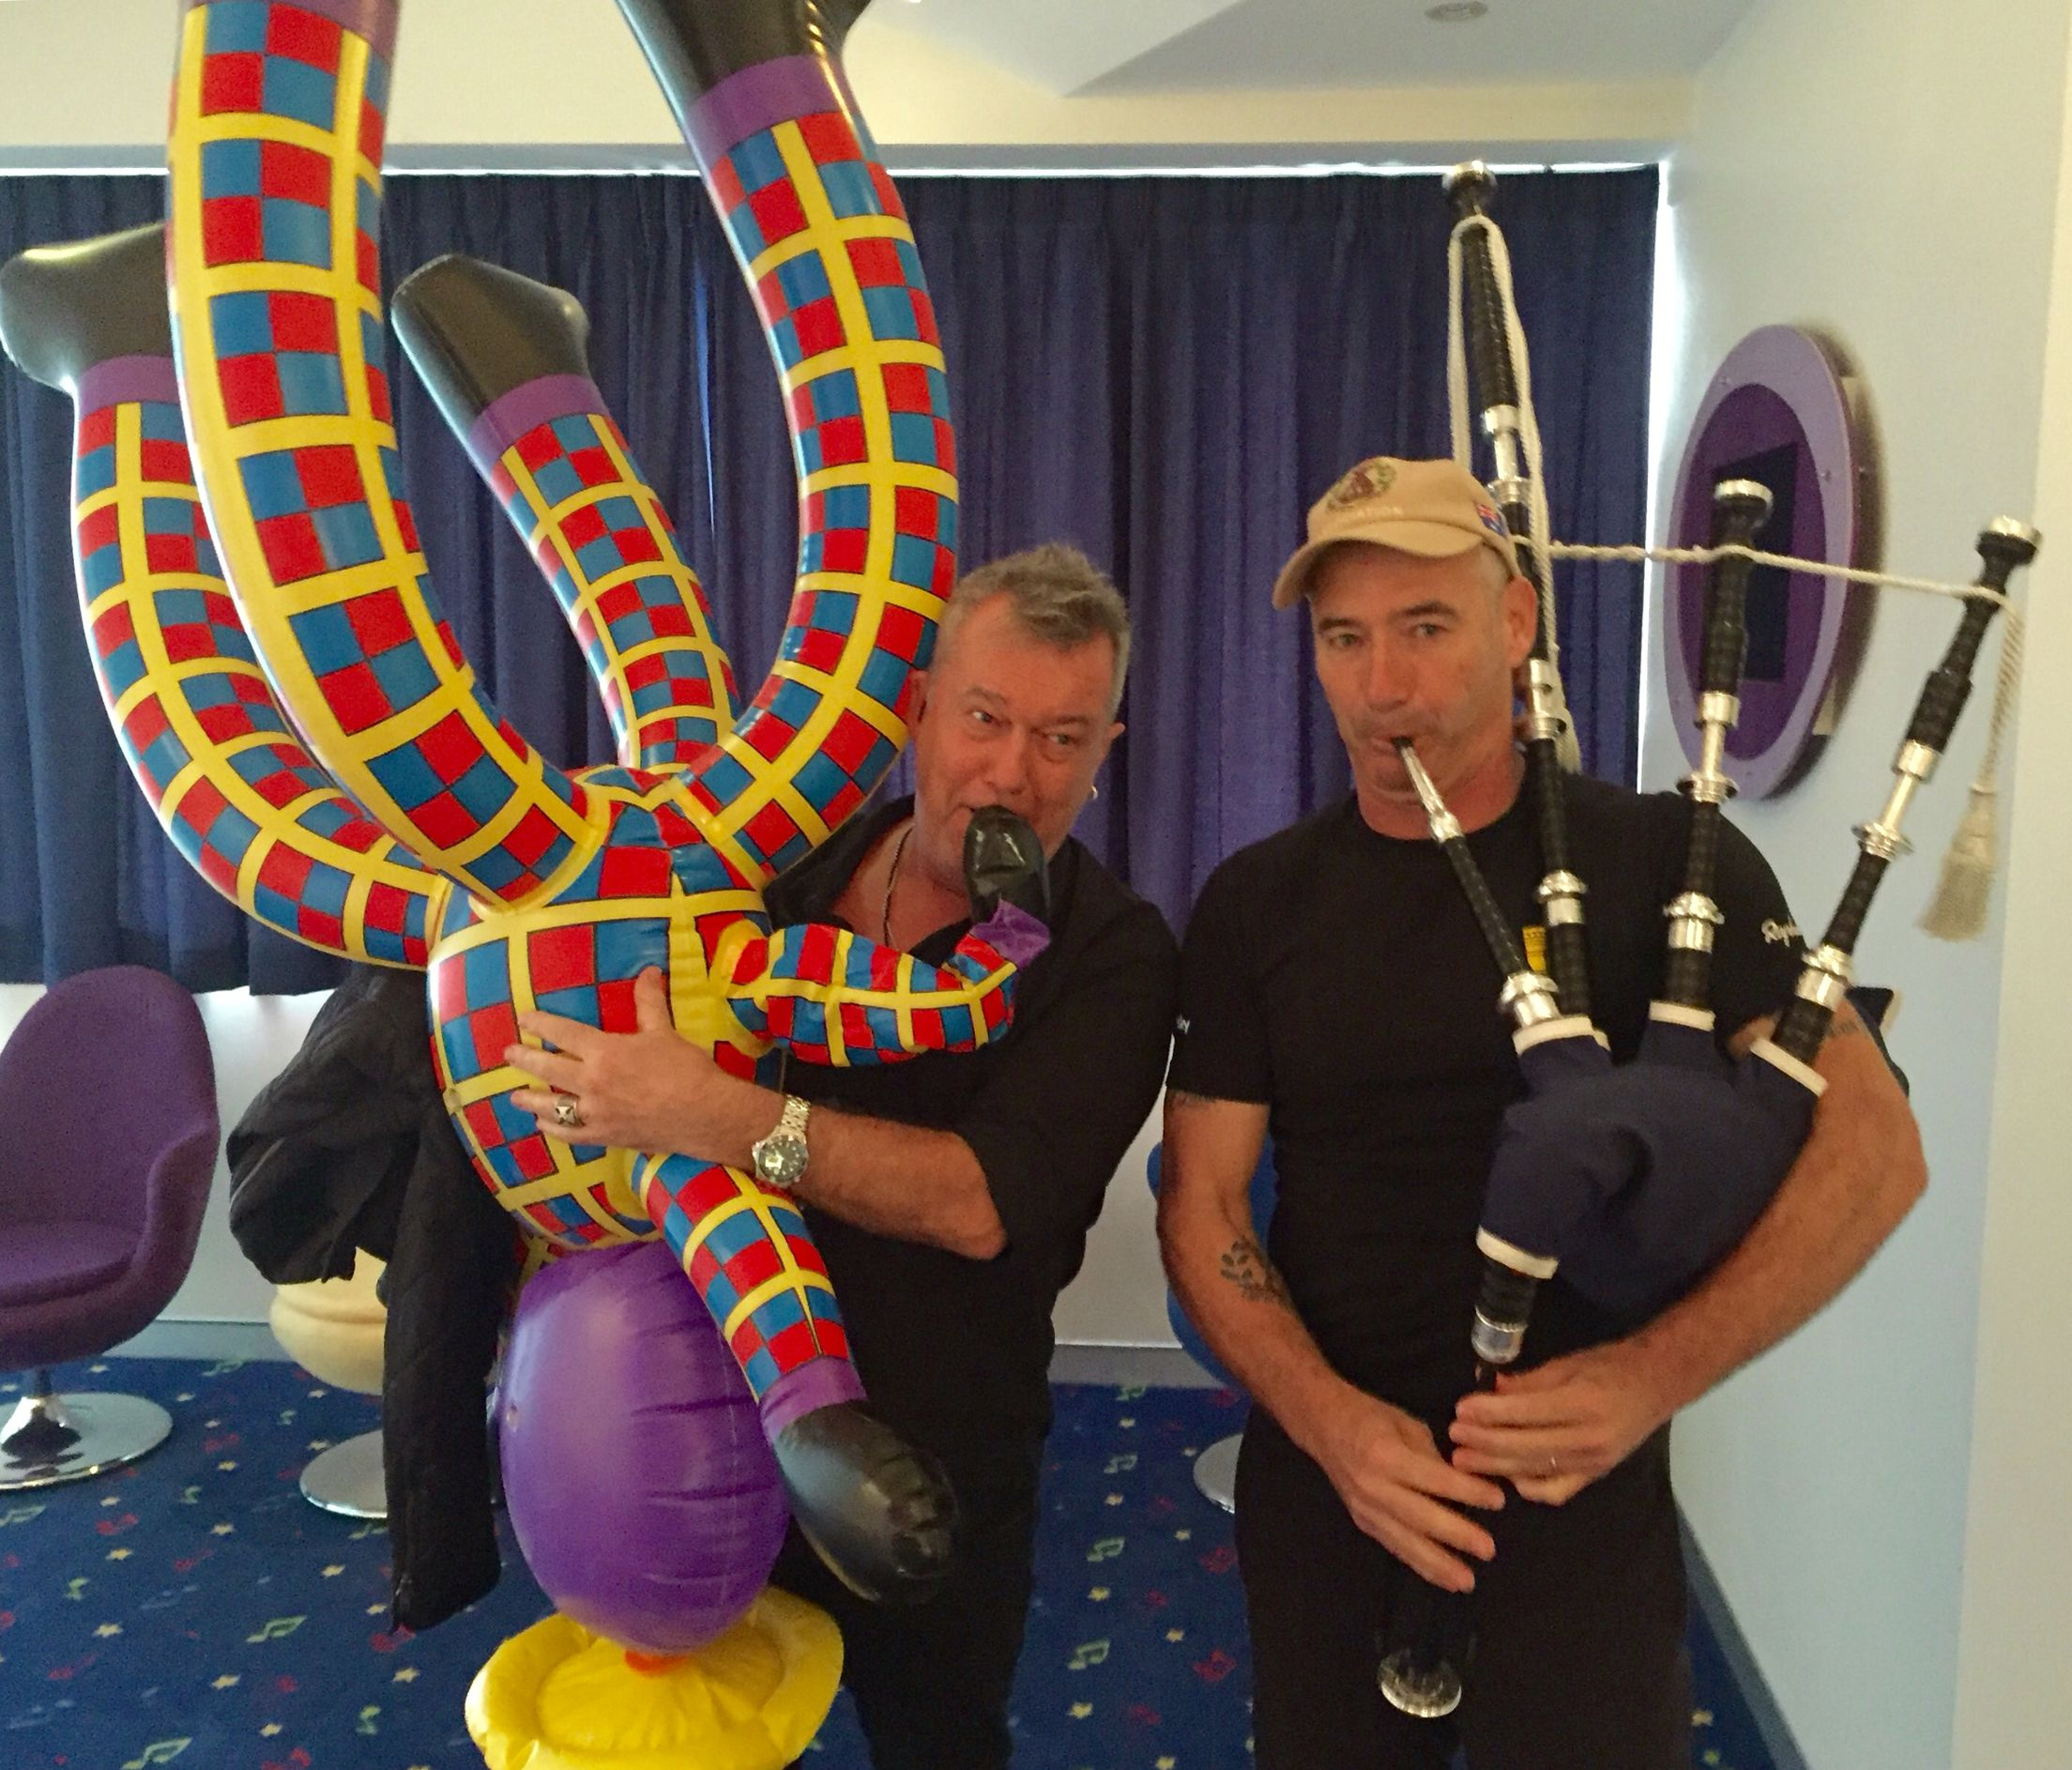 Thats Jimmy Barneshenry The Octopus And Anthony Wiggle The